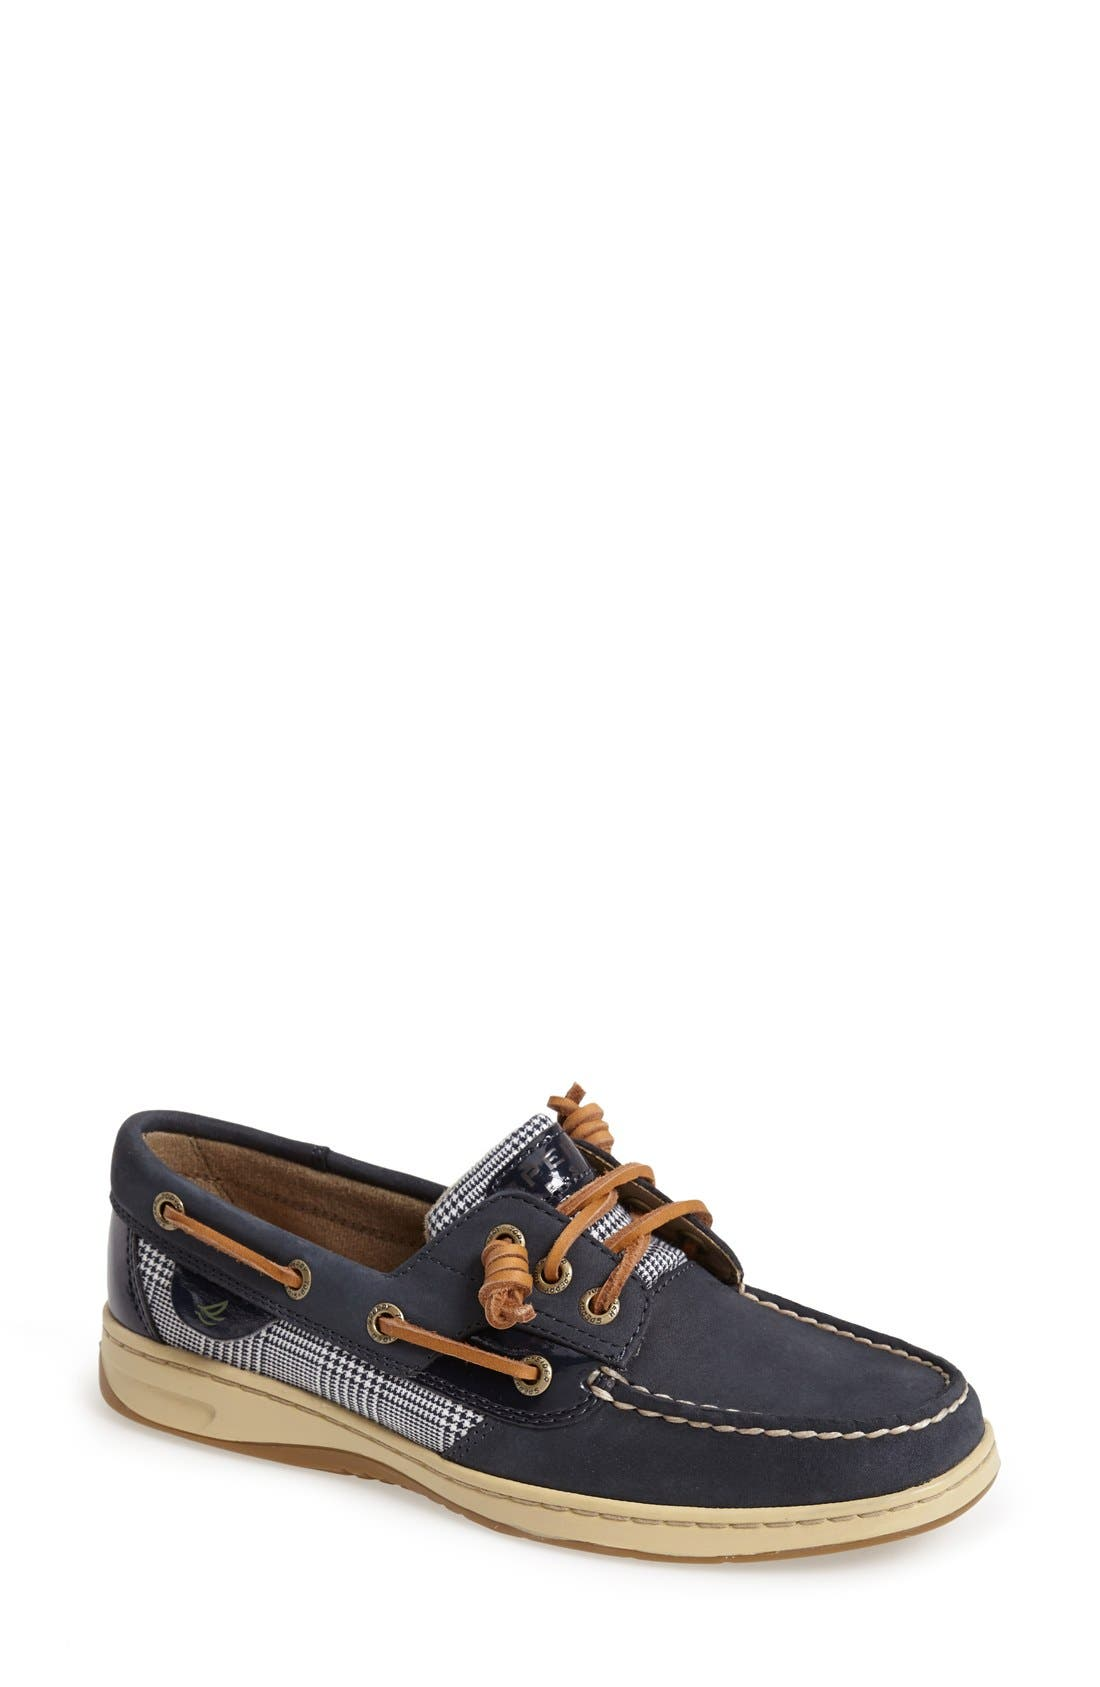 Main Image - Sperry 'Ivyfish' Boat Shoe (Women)